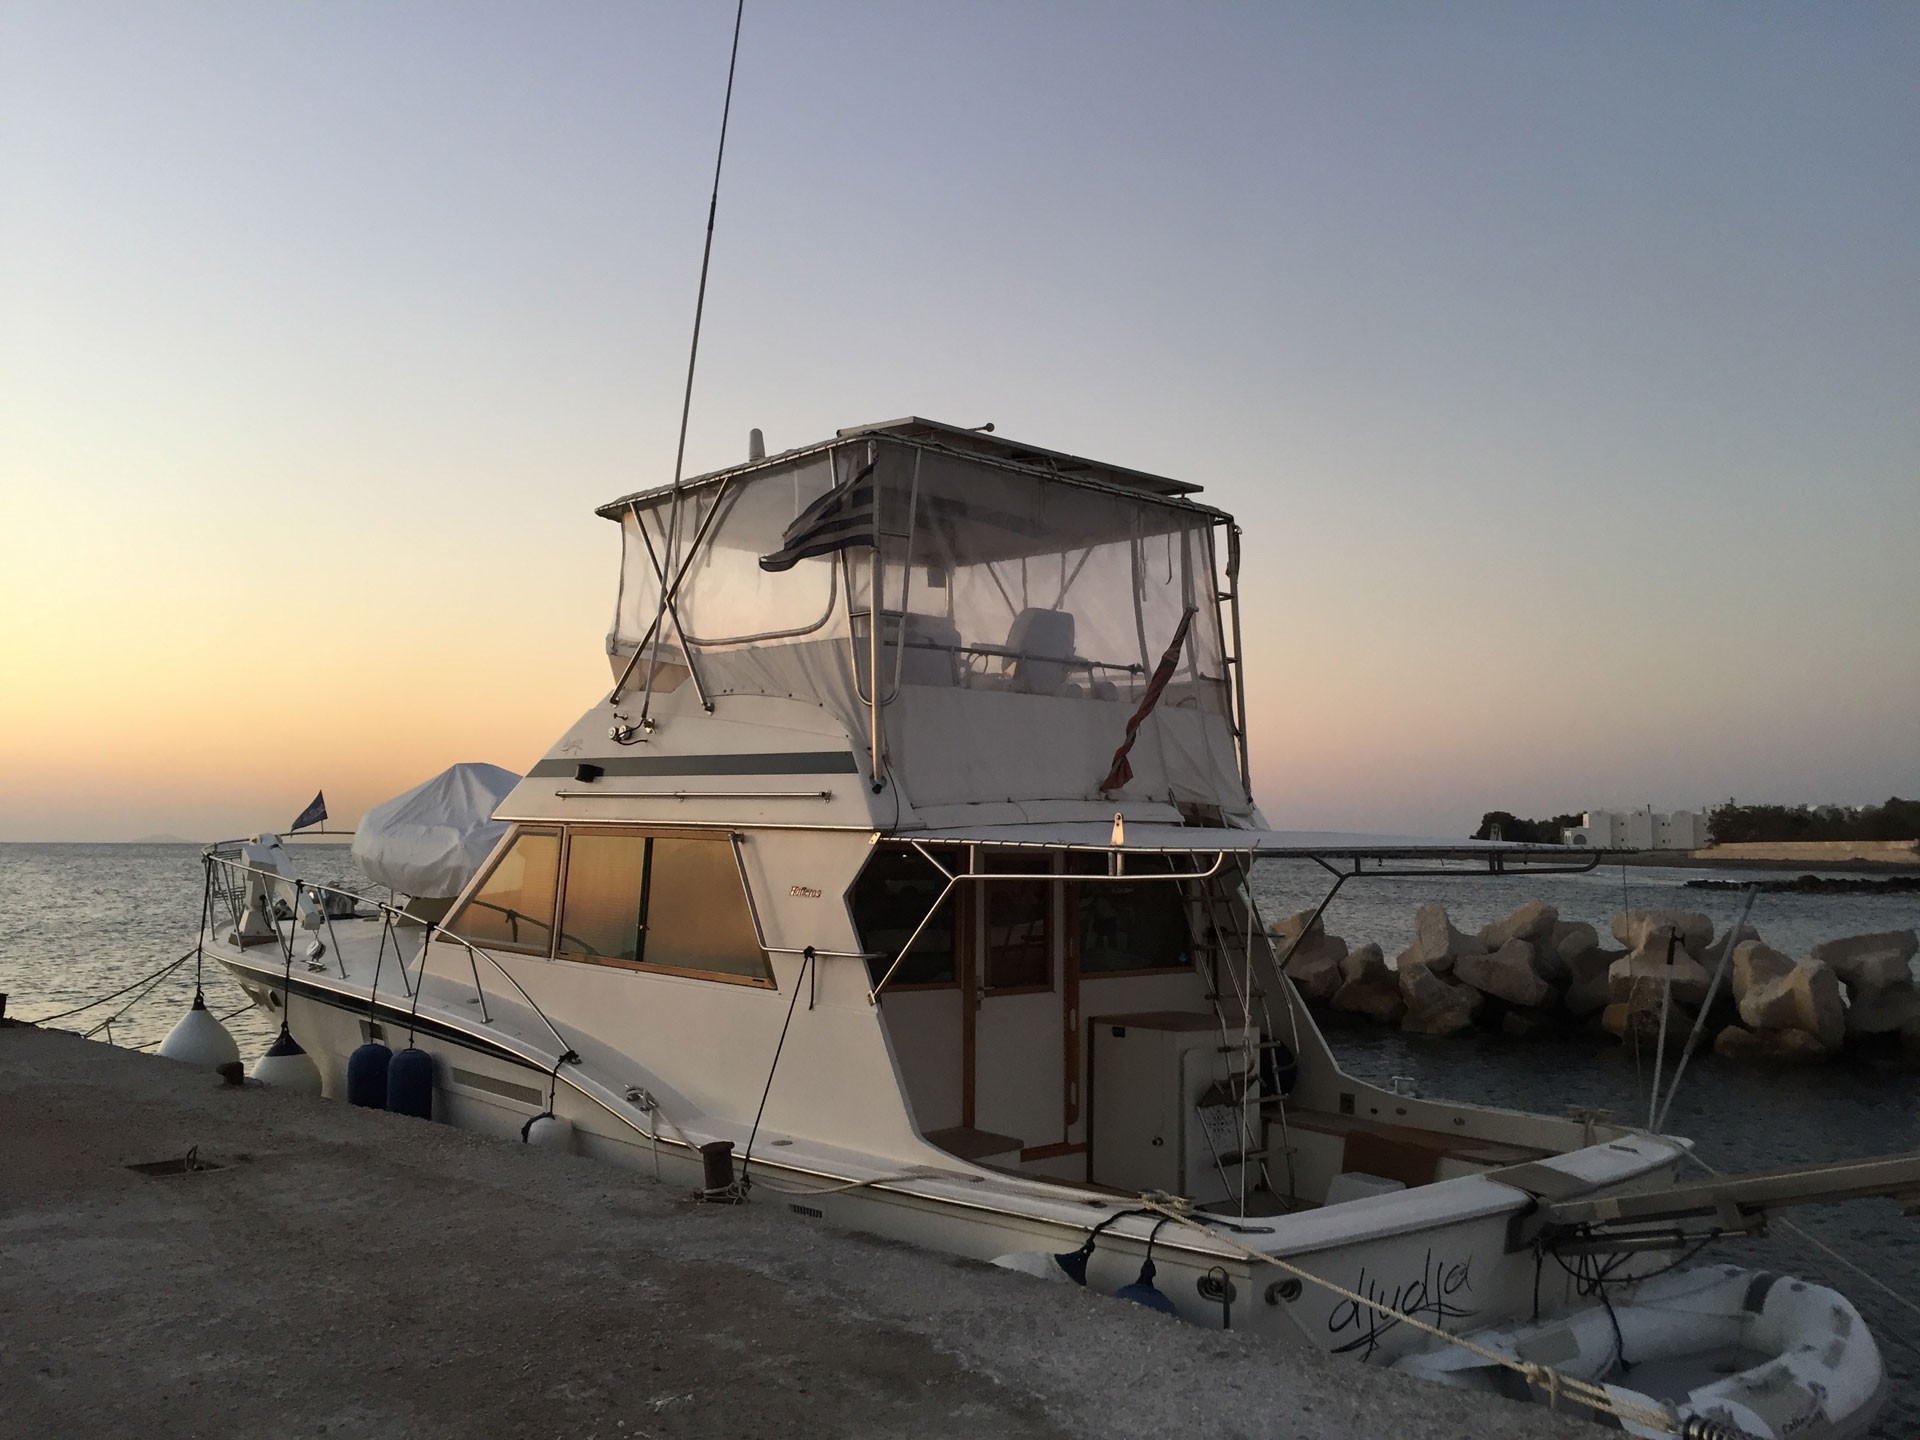 Santo-Maritime-Yachting-Hatteras-Exterior-Image8